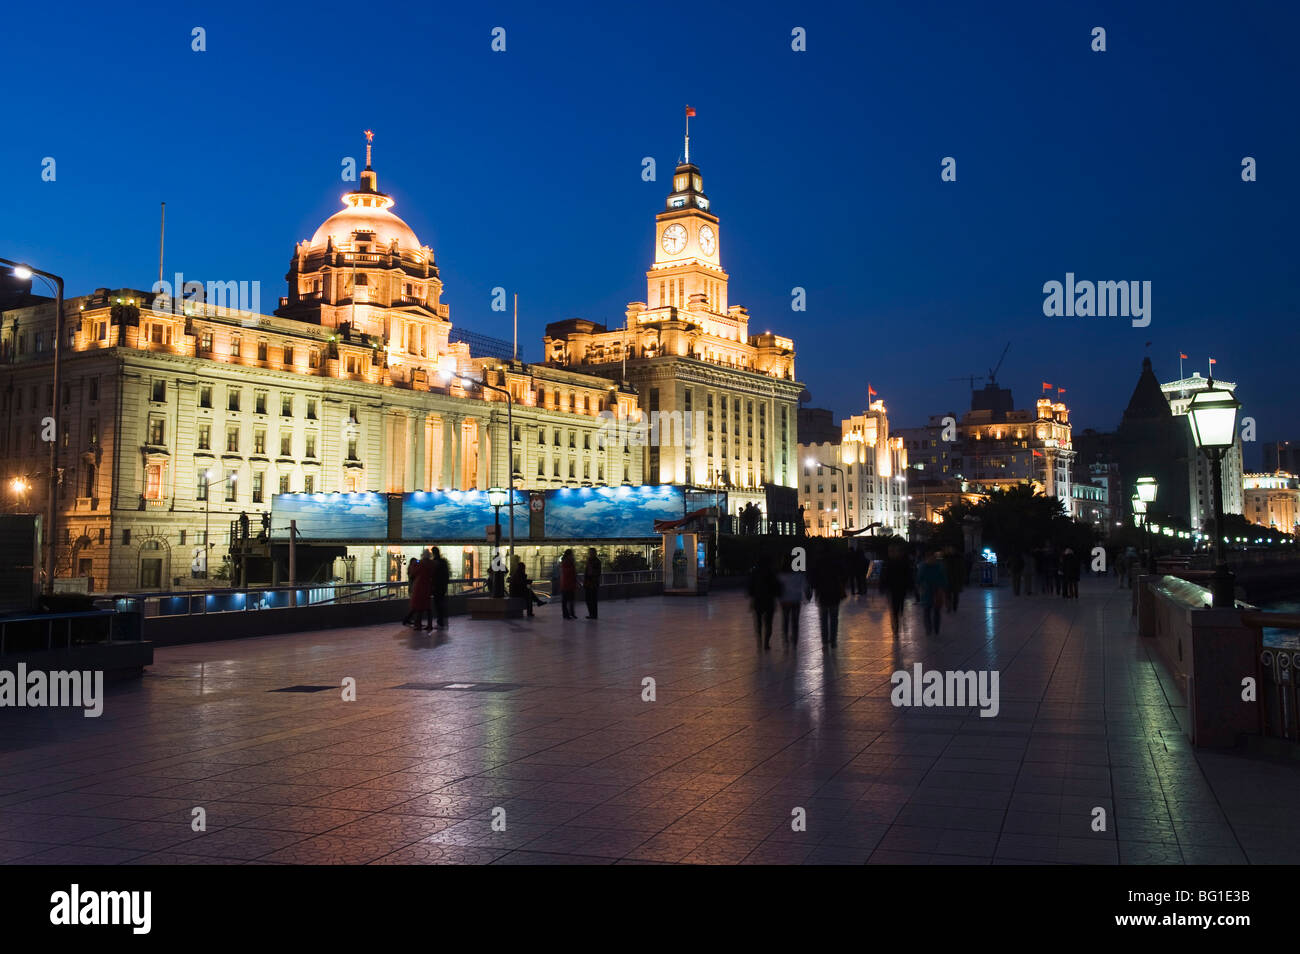 Historical colonial style buildings illuminated on The Bund, Shanghai, China, Asia - Stock Image